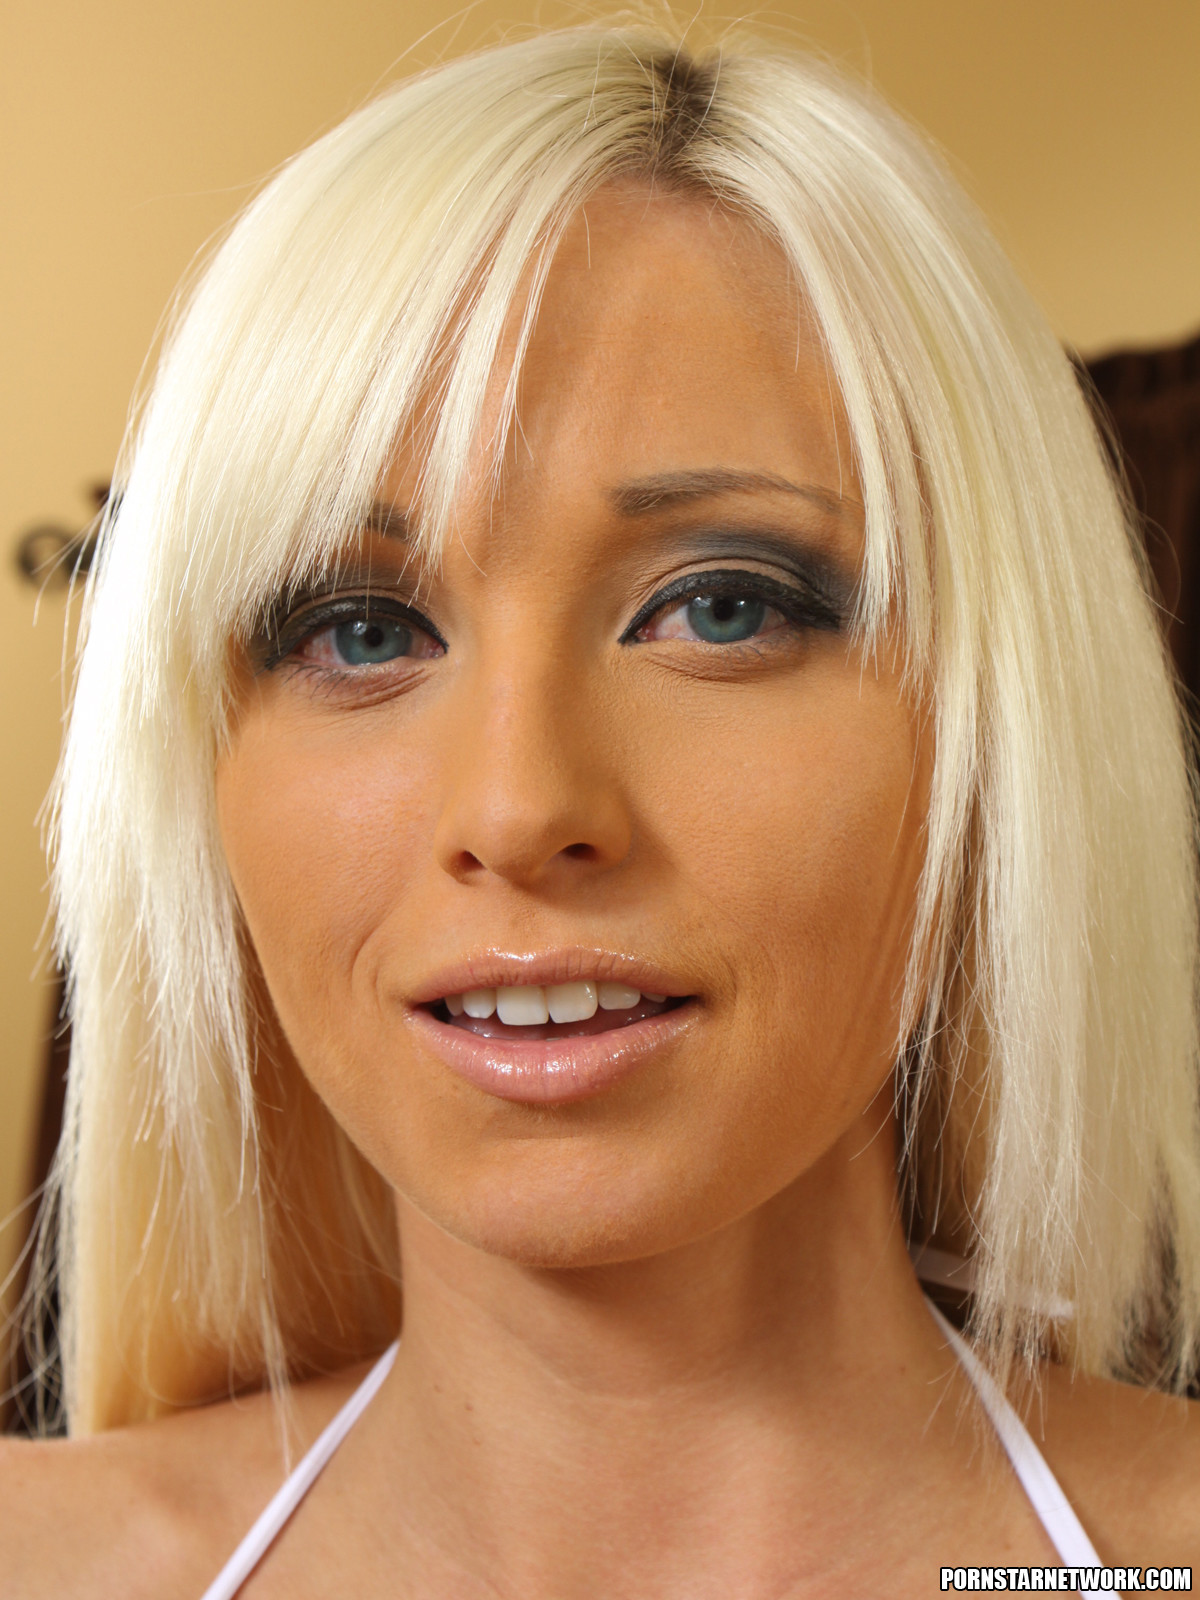 Rikki Six - The Blowjob Of Your Dreams 59129-1496